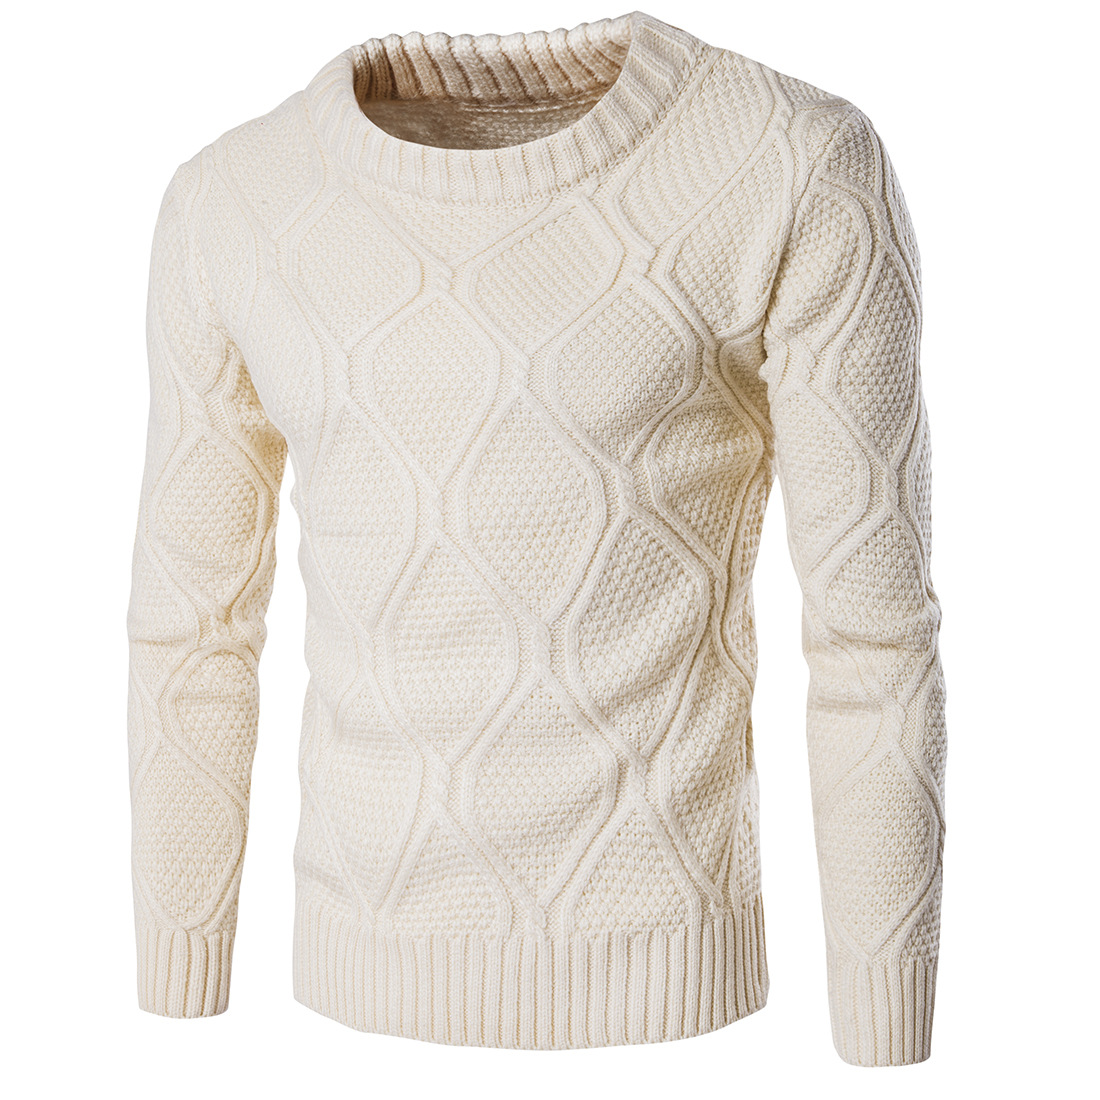 2018 Autumn Mens Casual Pullover Wool sweater , Warm winter mens round neck solid sweater men , Fashion twist knit sweater